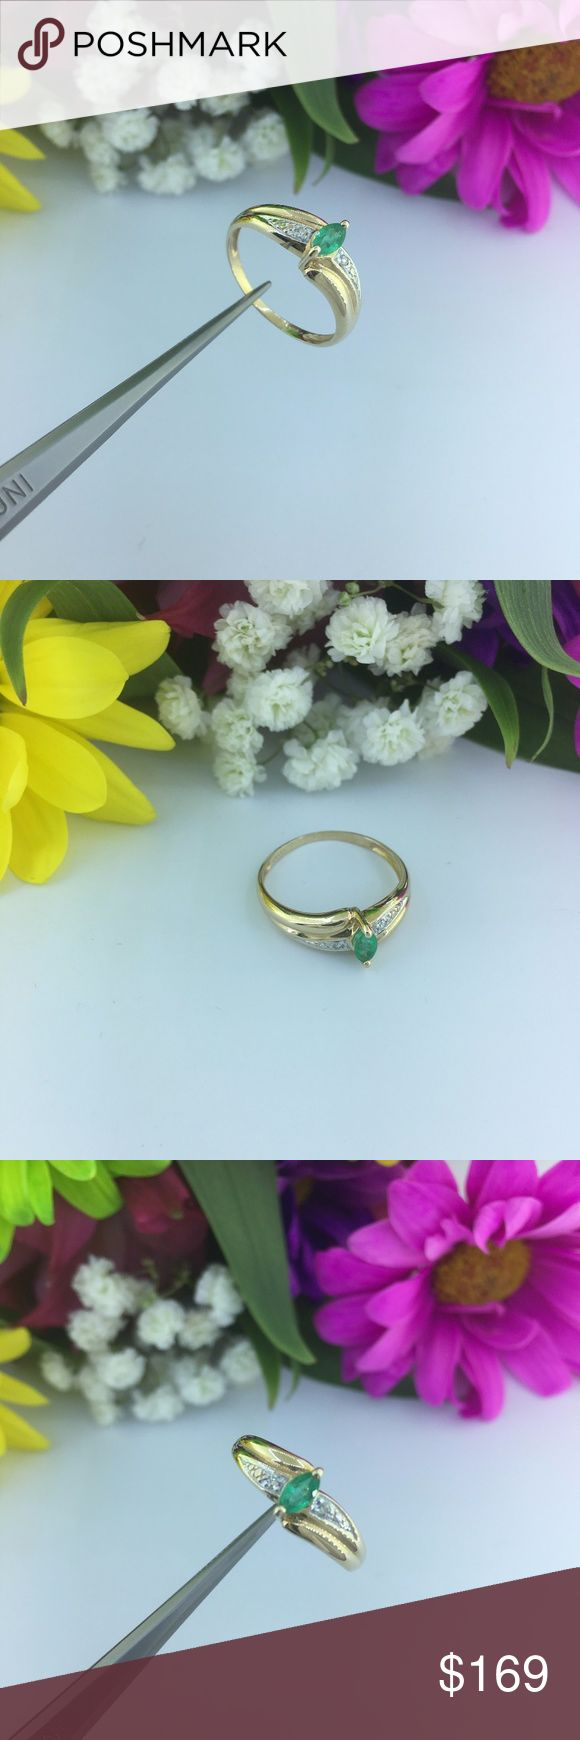 Ladies 14k Yellow Gold Emerald Ring With Diamonds Ladies Marquise Shape Emerald 14k Yellow Gold Ring Accented With Pave Set Diamonds  Gemstones: Genuine Emerald  Mounting metal: 14K yellow gold  Ring Size: Size 7  Center Stone : 5.5mm X 2.7mm   Total weight of piece:	1.9g   Retail Price: $399 Jewelry Rings